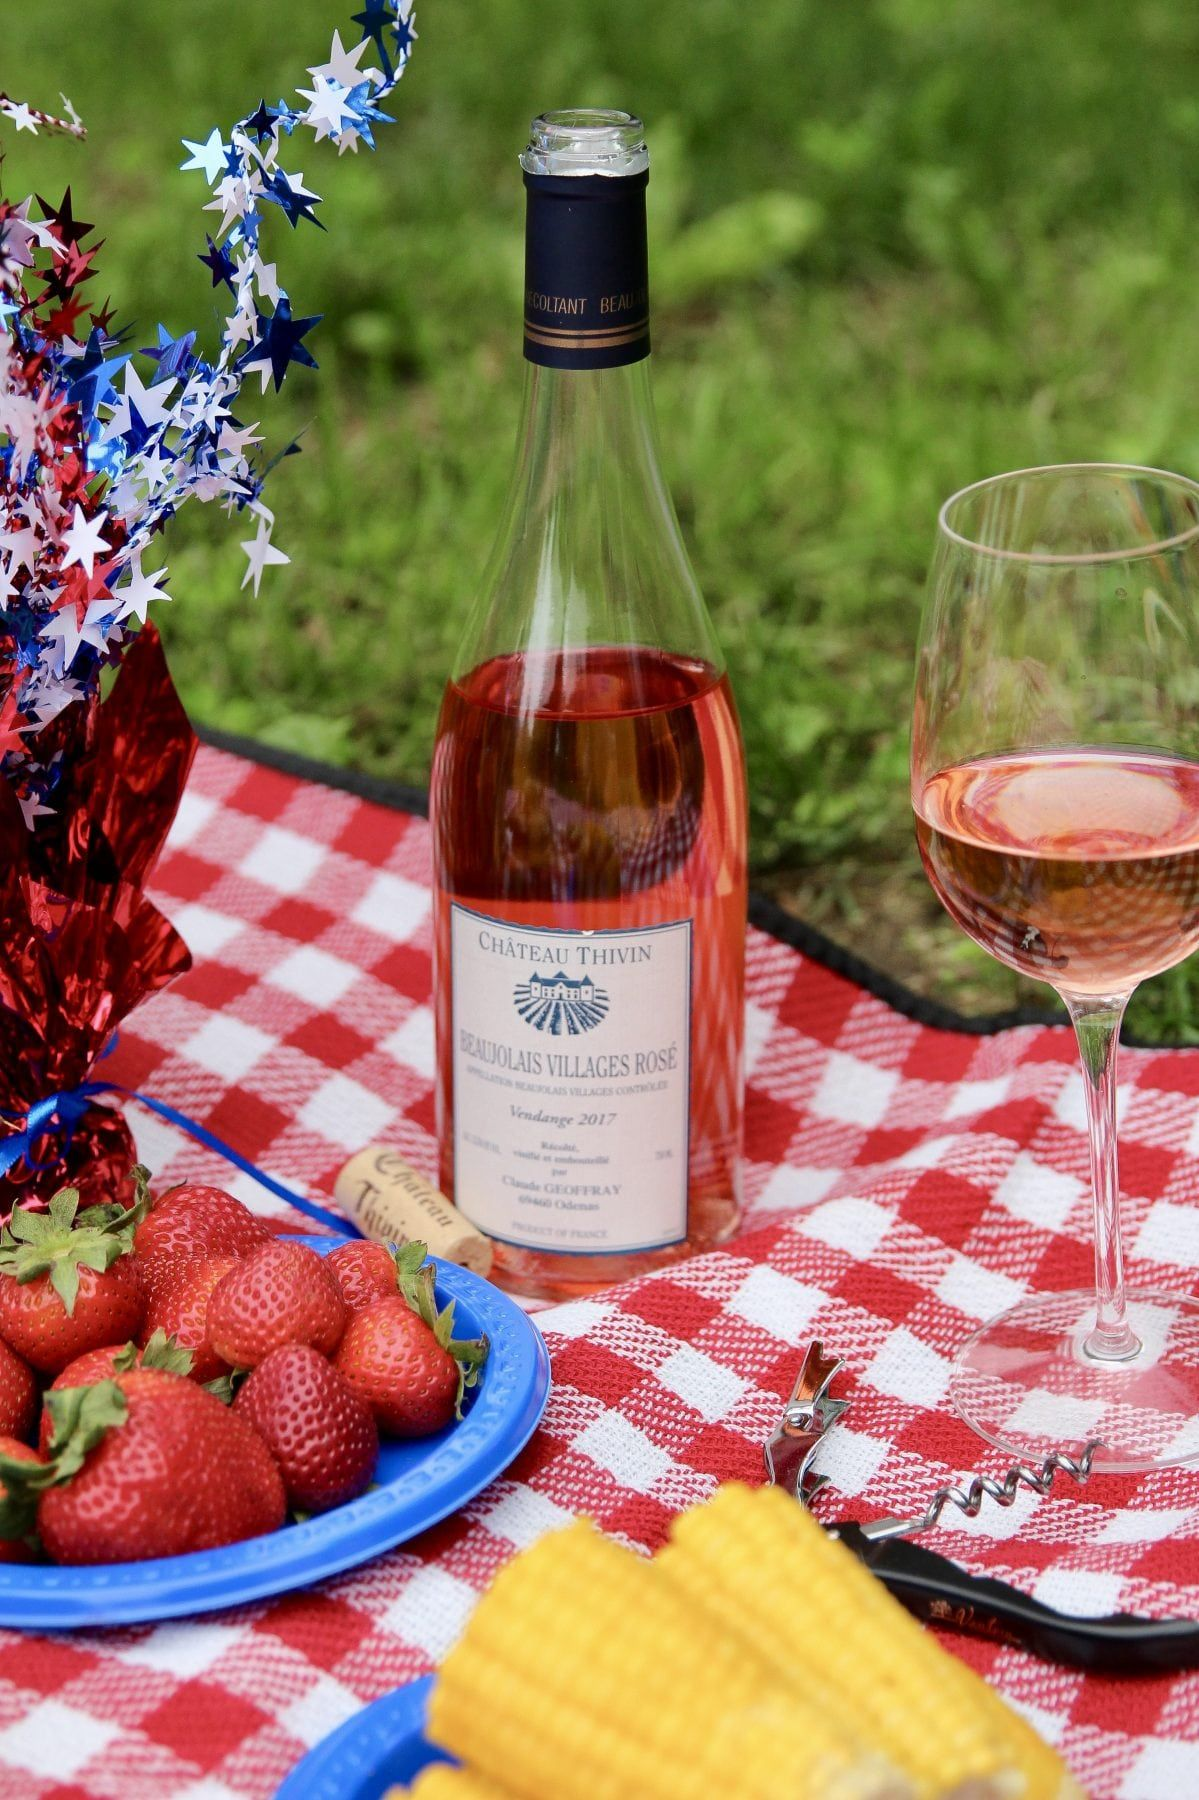 Upgrade Your 4th Of July With Beaujolais Wine Recipe Beaujolais Wine Rose Wine Bottle